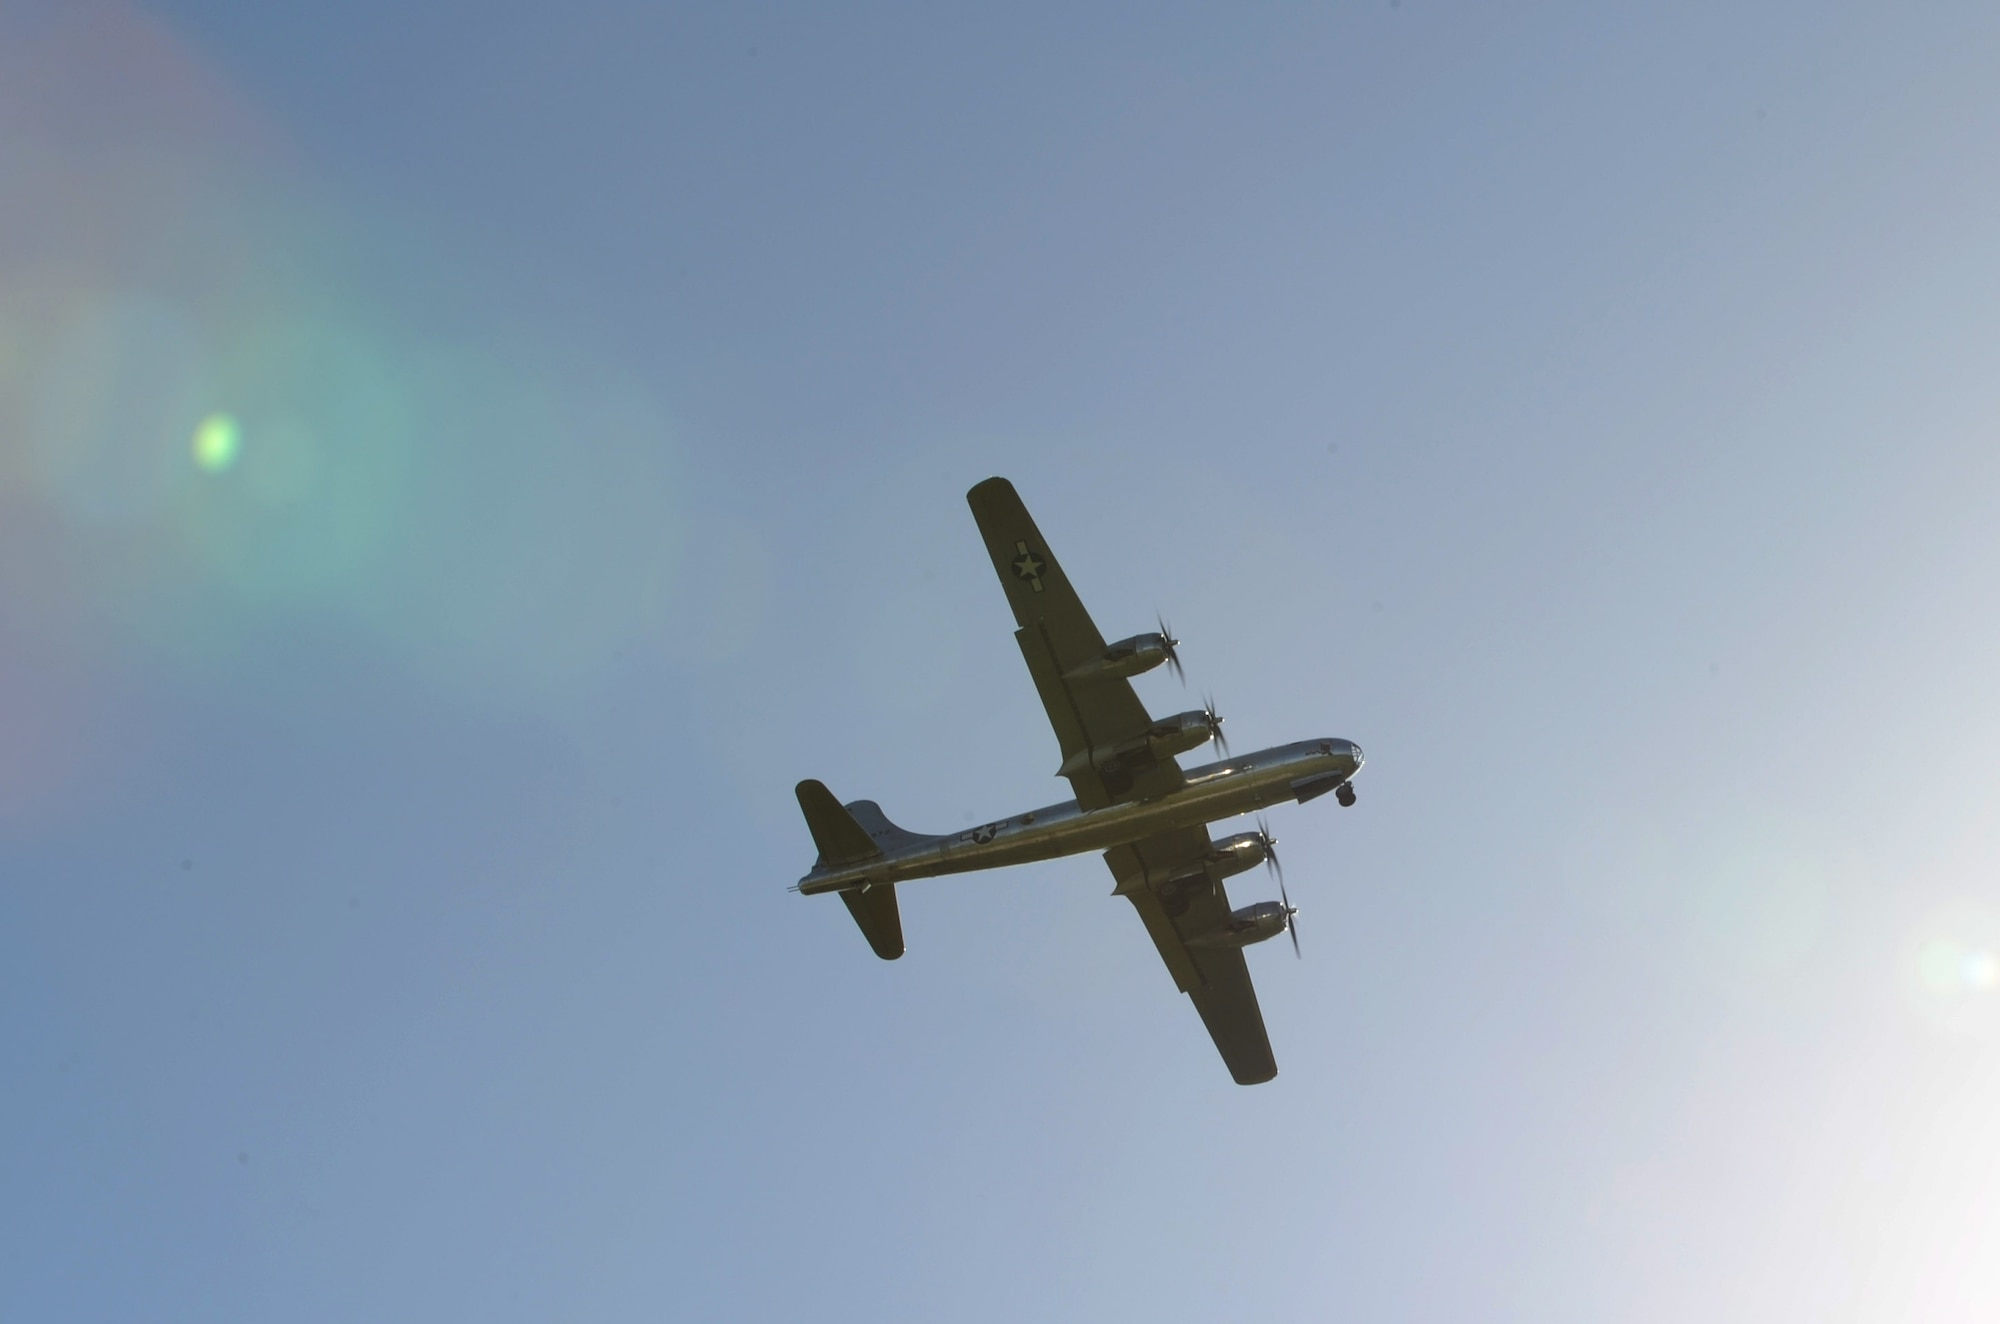 A B-29 Superfortress, known as 'Doc,' flies over McConnell Air Force Base Kan., July 17, 2016. This was the aircraft's first flight after being used by the U.S. Navy for target training in the Mojave Desert for 42 years. (U.S Air Force photo/)